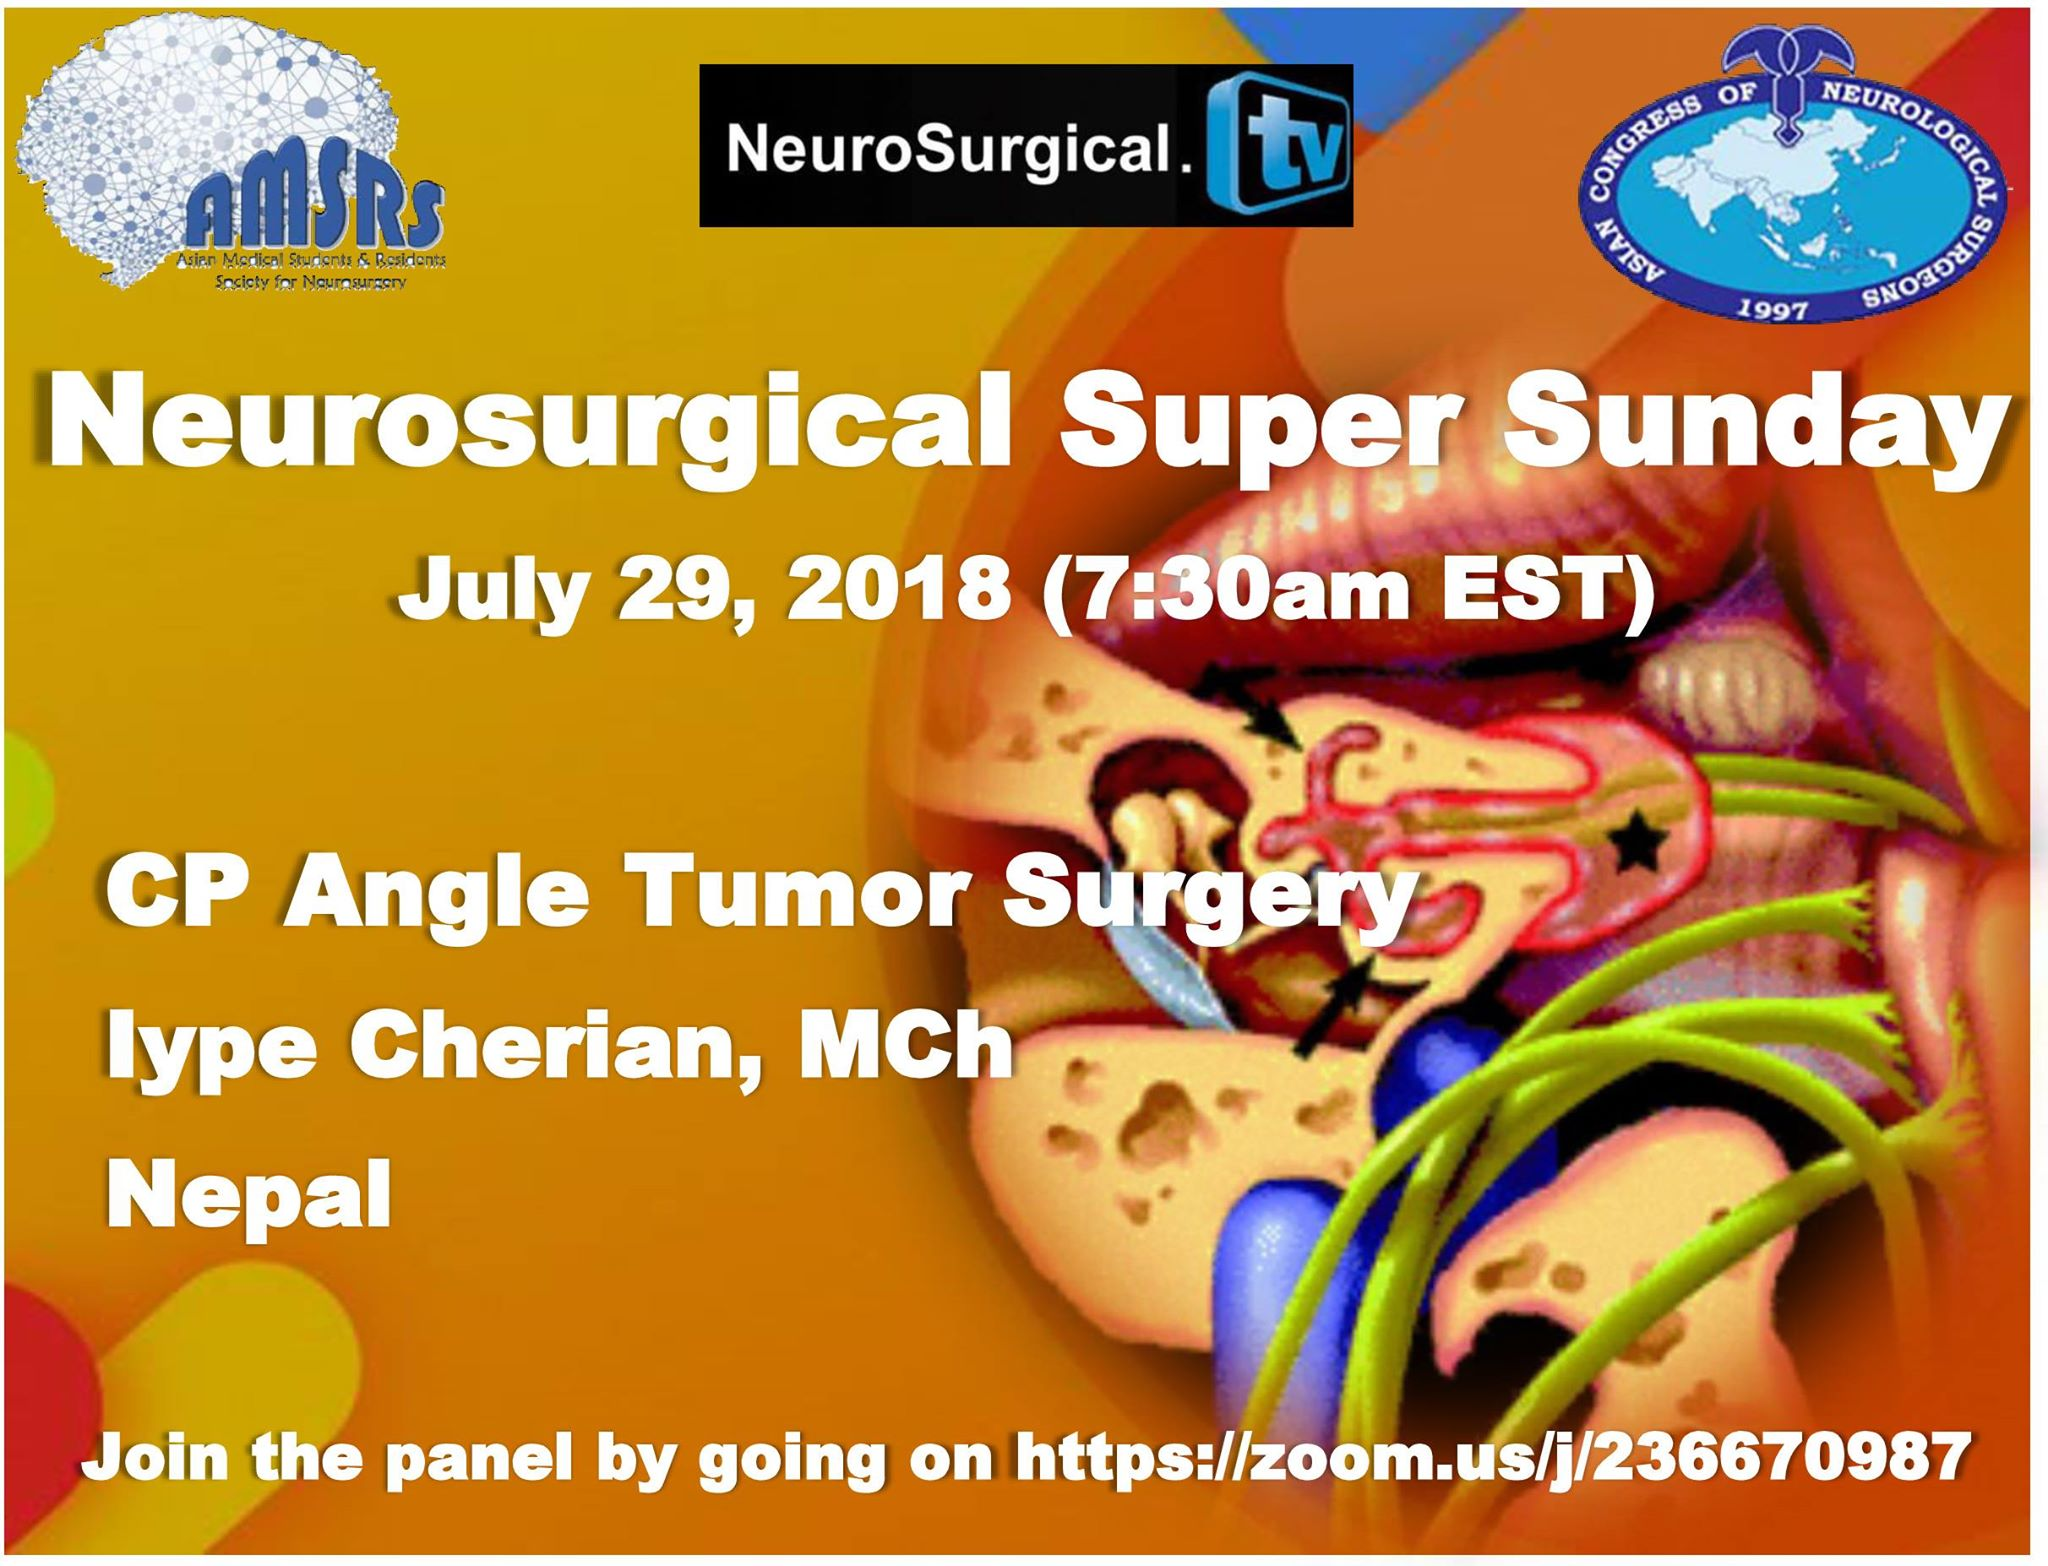 """CP Angle Tumor Surgery"" for Neurosurgery Super Sunday"